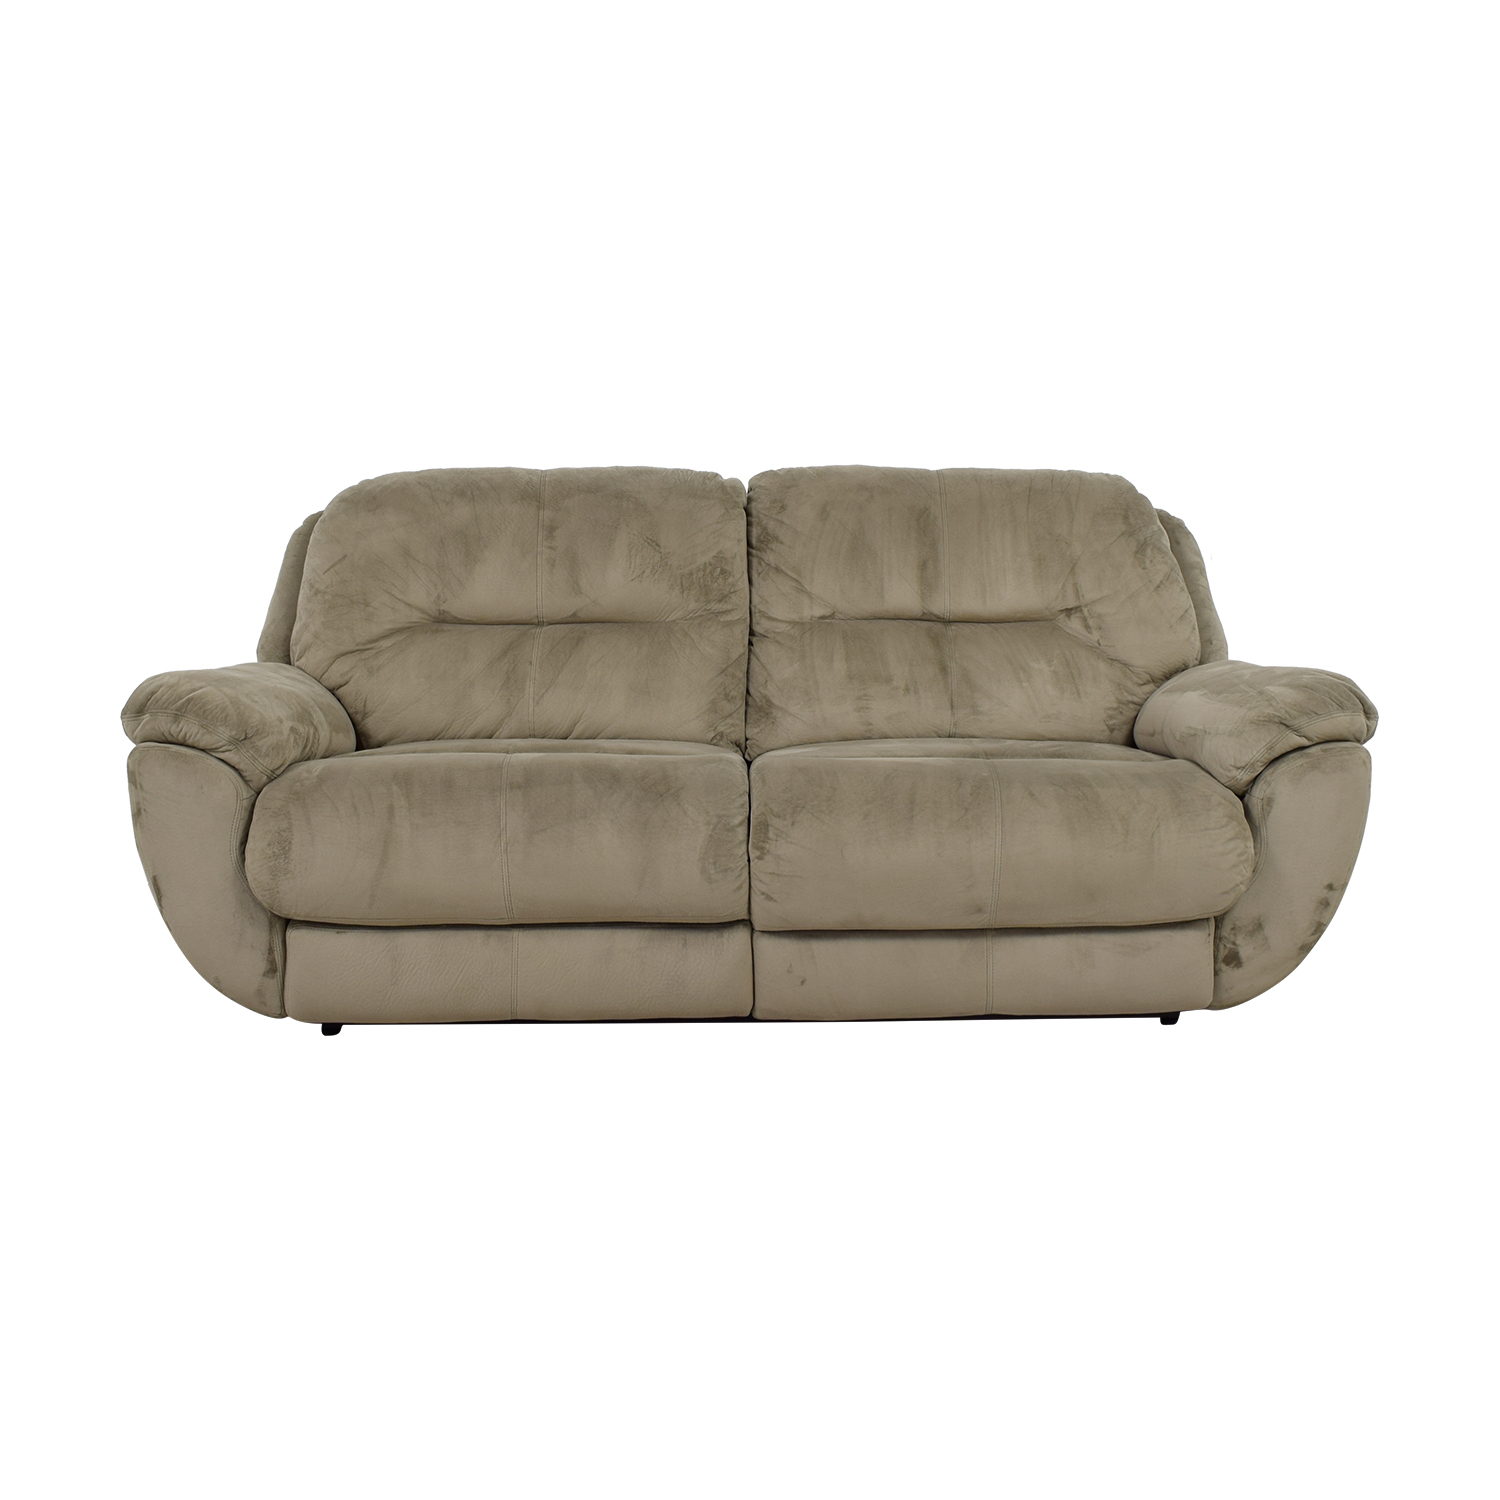 Raymour & Flanigan Raymour & Flanigan Grey Micro-Suede Power Reclining Sofa GREY